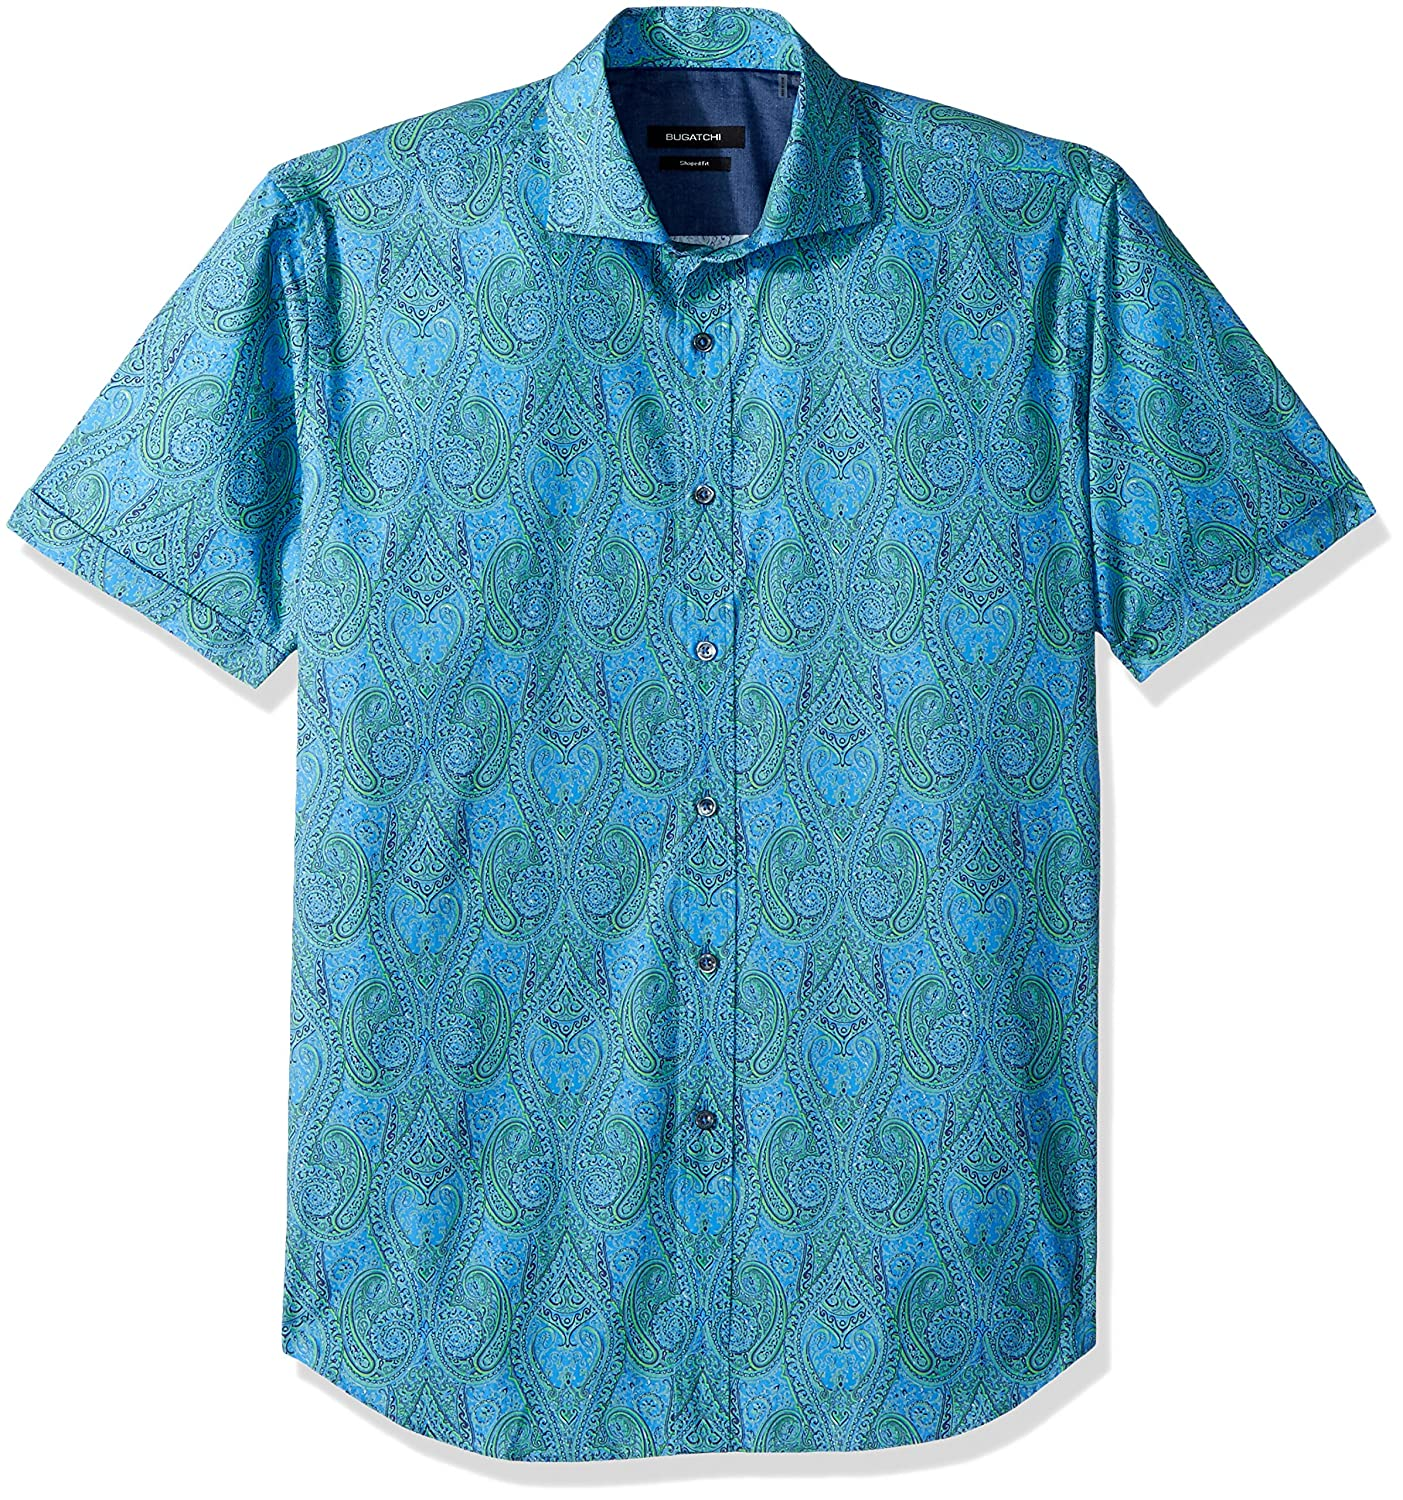 Bugatchi Mens Fitted Blue and Green Paisley One Piece Spread Collar Shirt